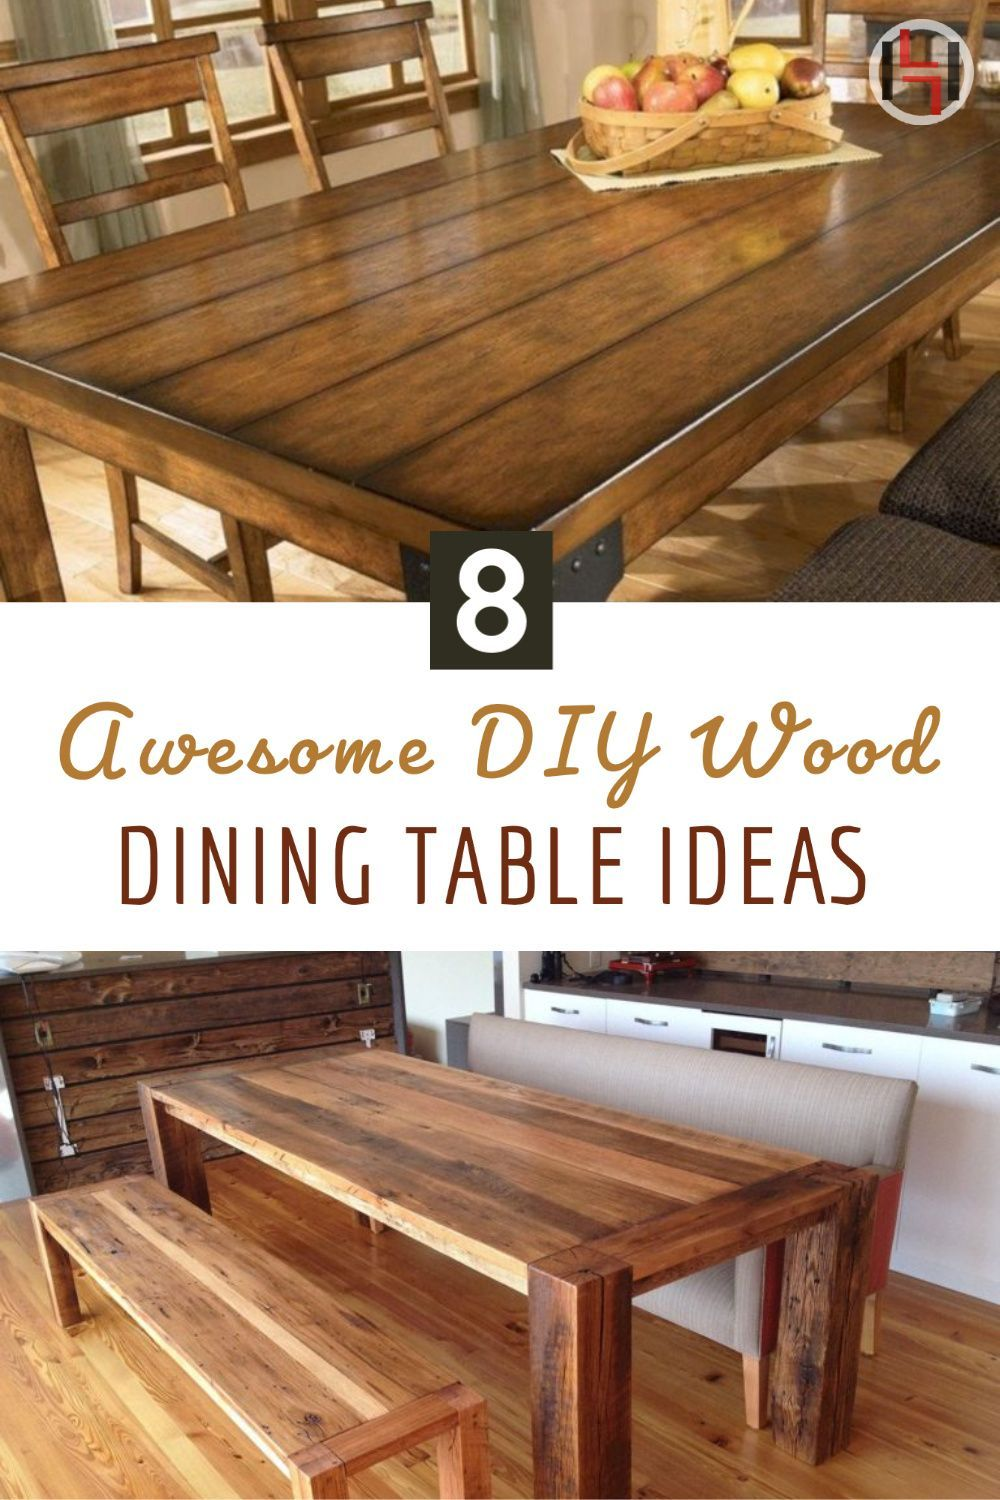 8 Awesome Diy Wood Dining Table Ideas To Make More Comfort Homagz Dining Table Beautiful Dining Rooms Wooden Dining Room Table